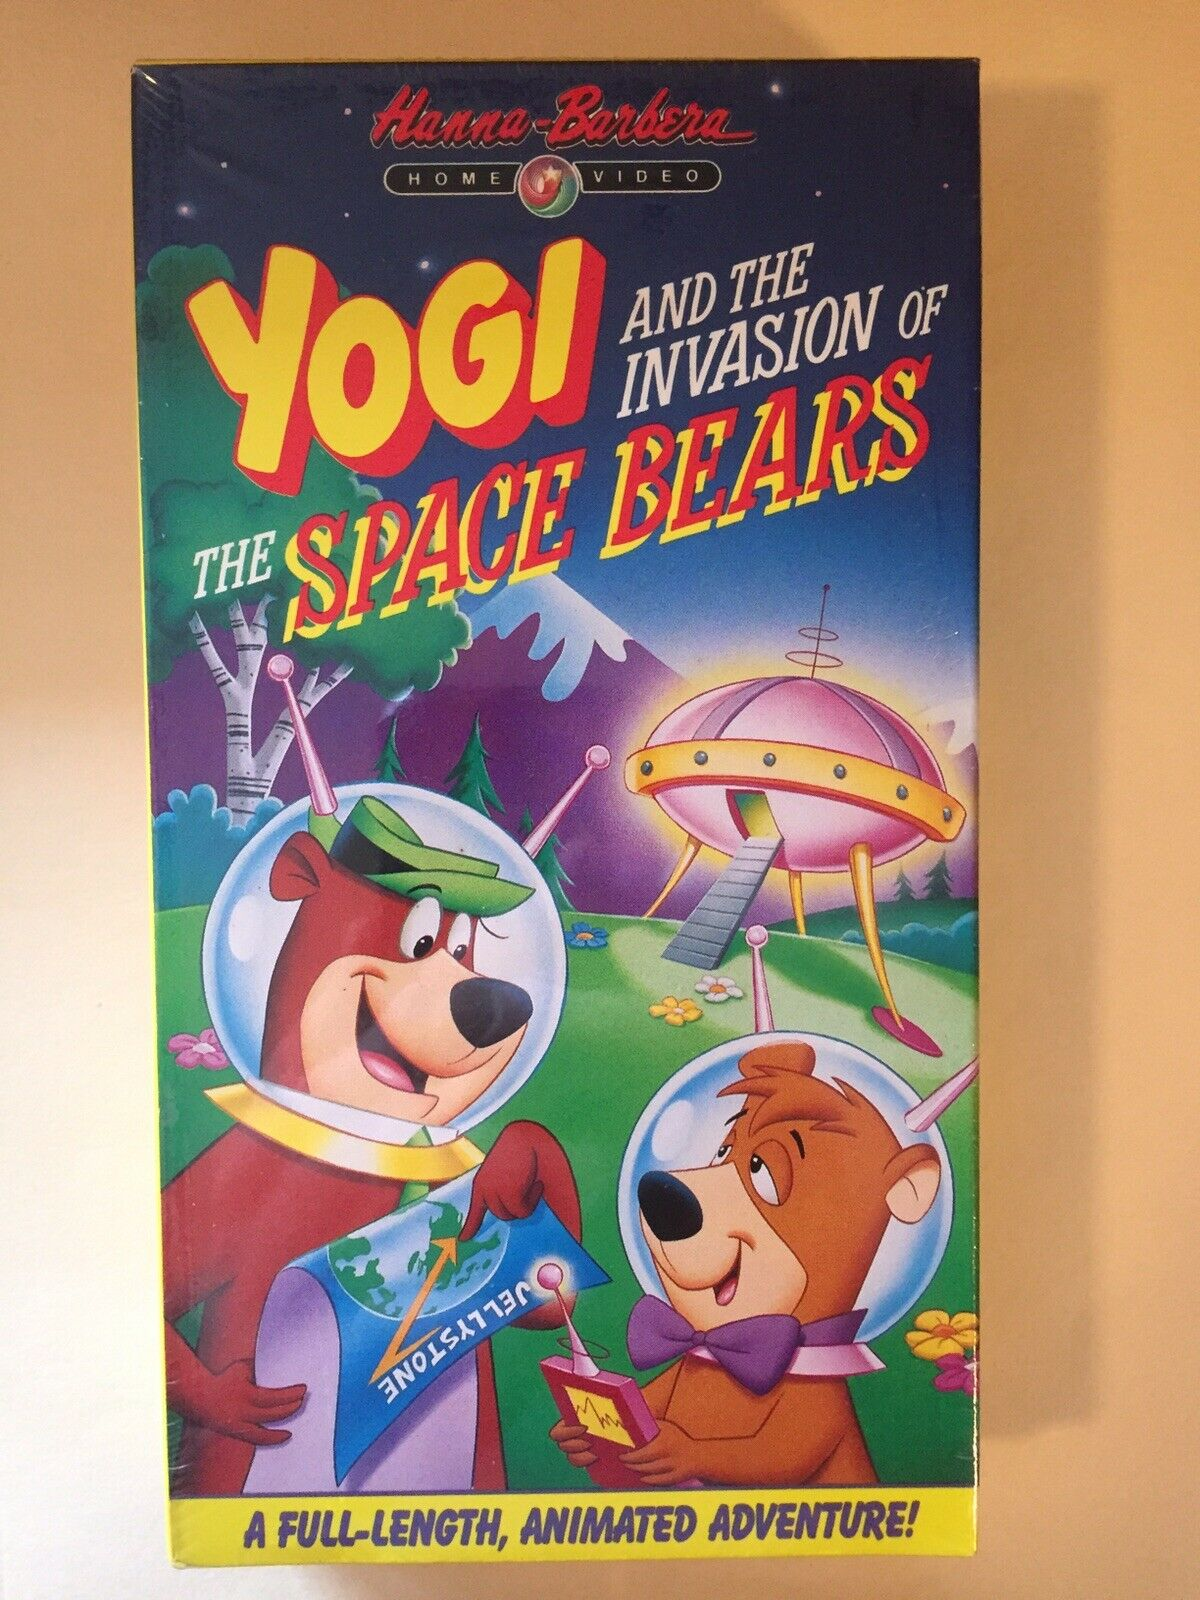 Yogi and the Invasion of the Space Bears (1990 VHS)